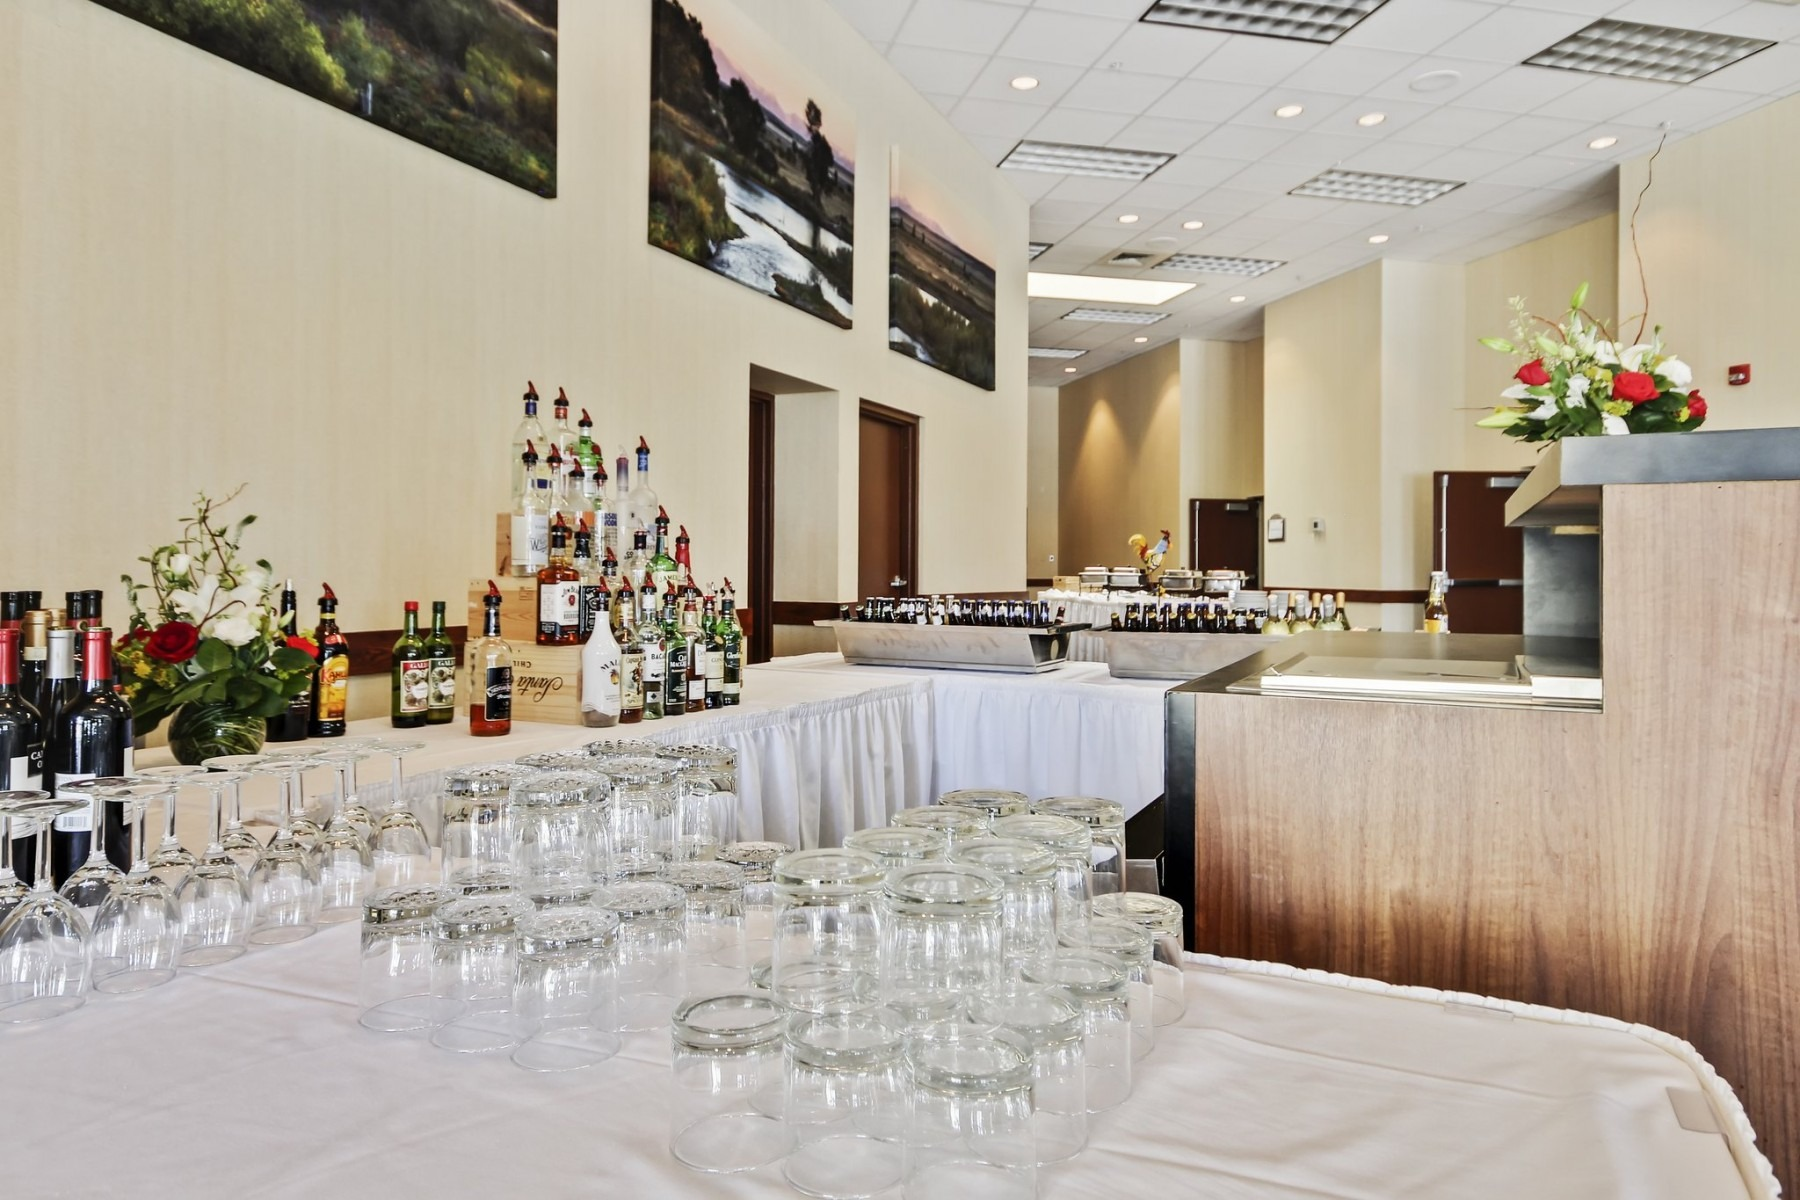 Banquet/Wedding Bar